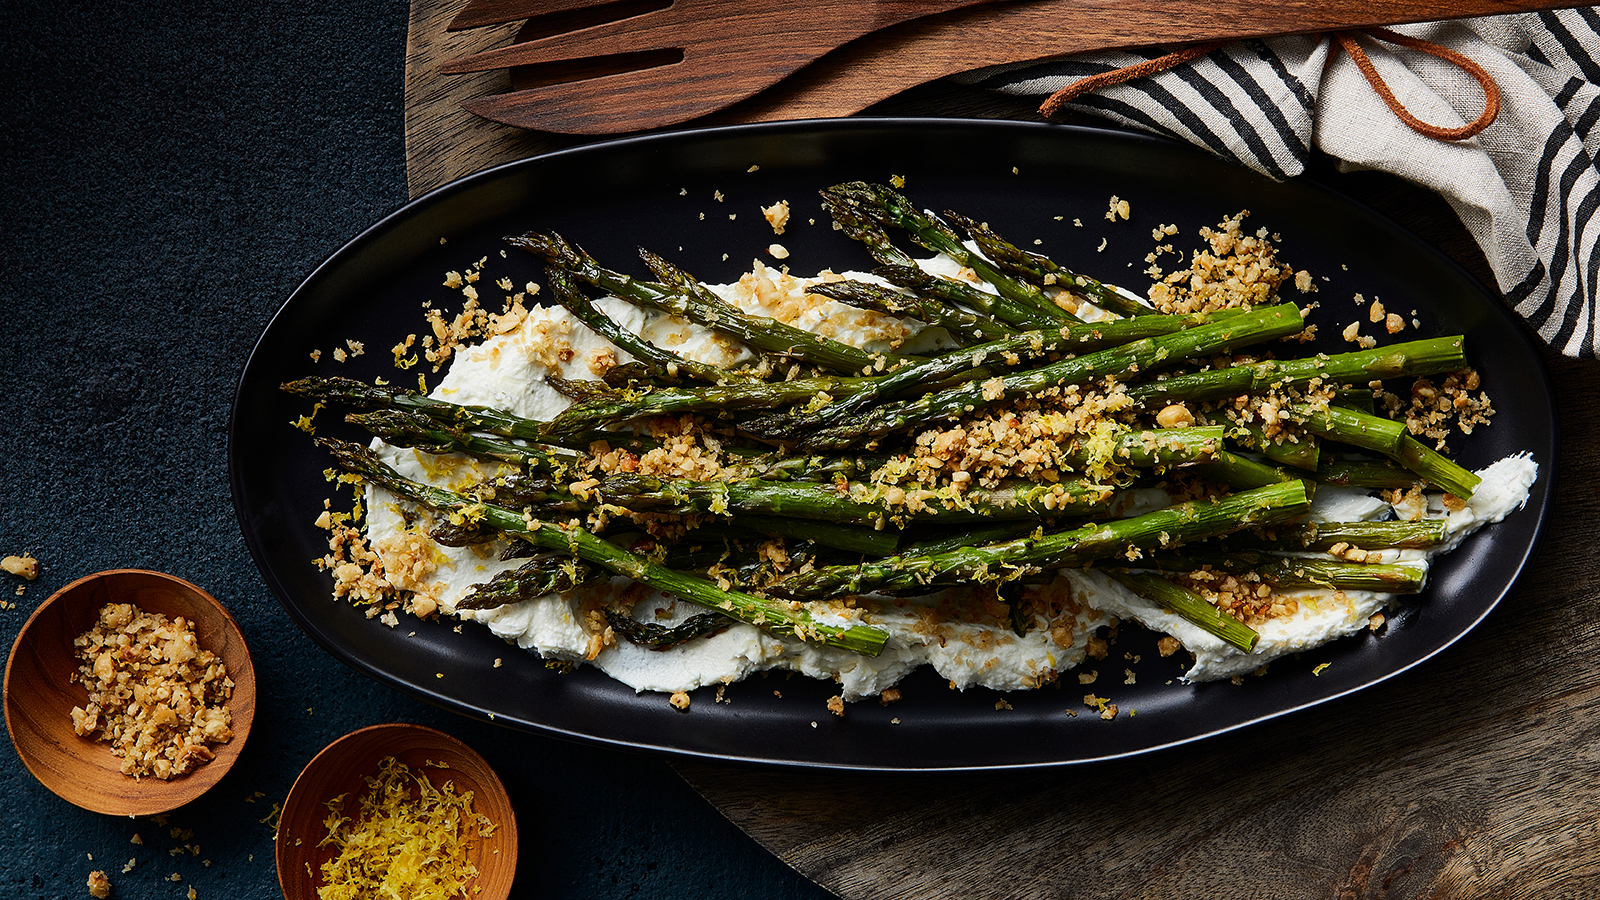 Roasted-Asparagus-with-Goat-Cheese-and-Hazelnuts